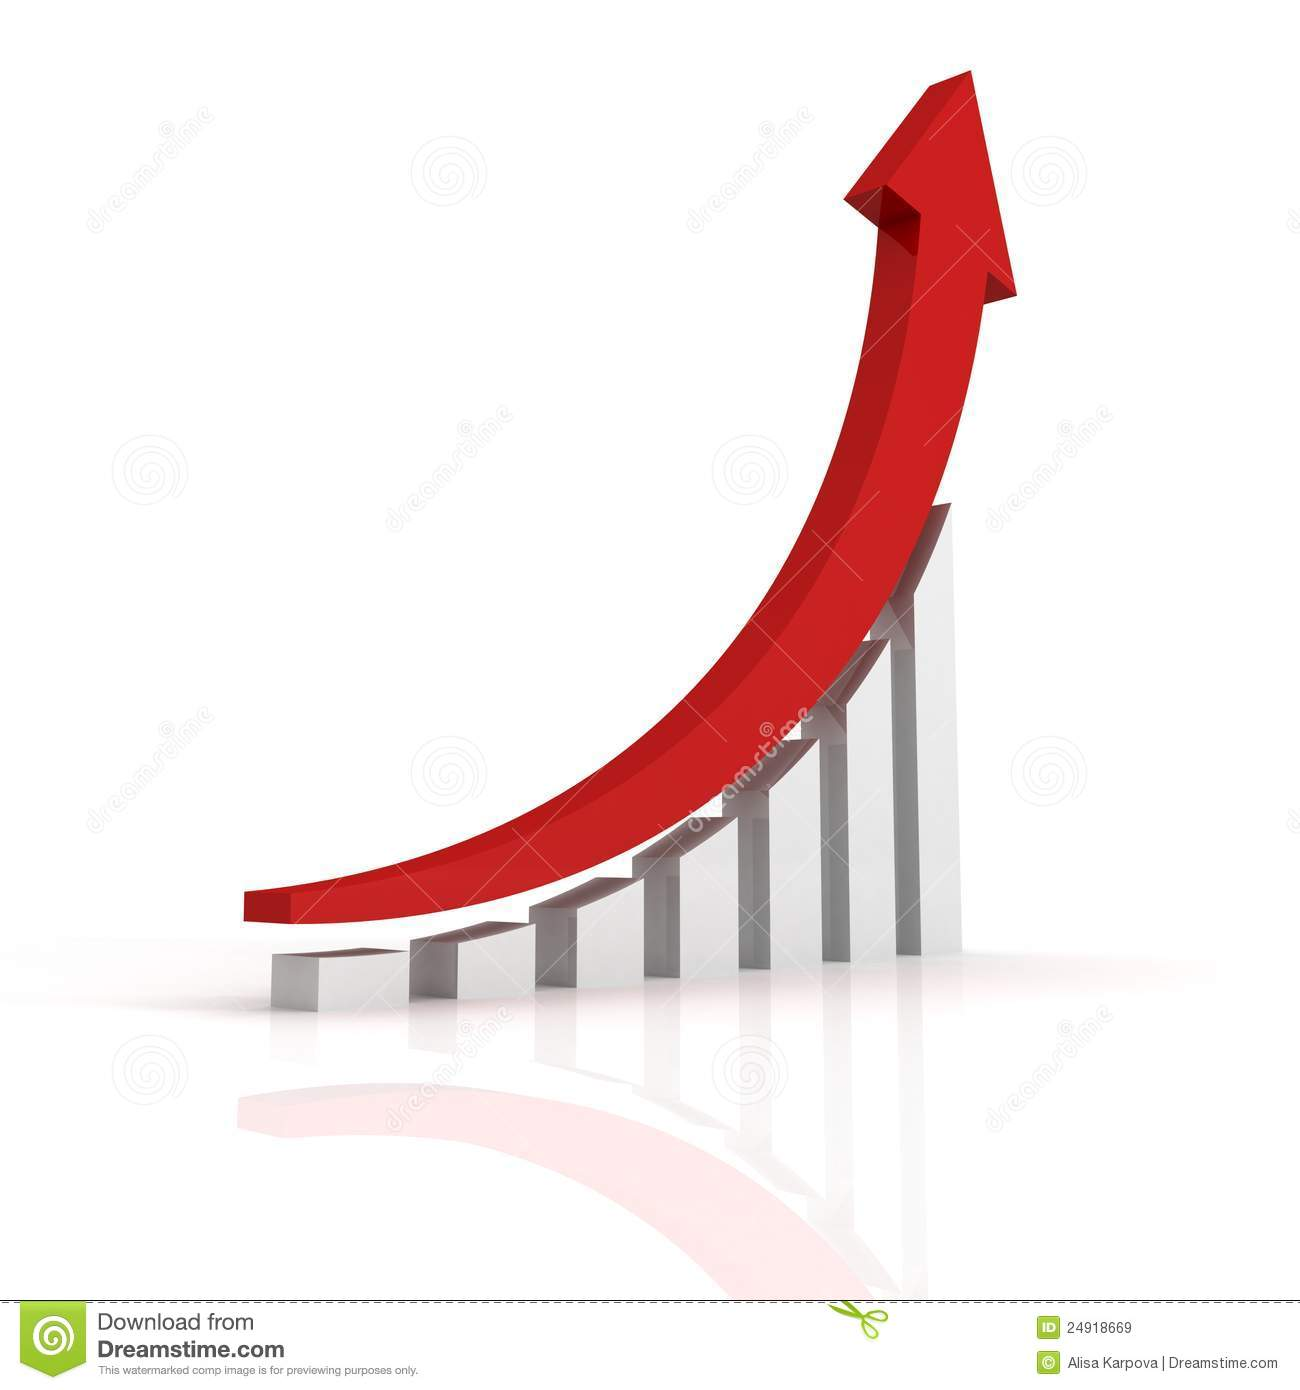 ... Bar Graph With Arrow Royalty Free Stock Images - Image: 24918669: www.dreamstime.com/royalty-free-stock-images-success-business...